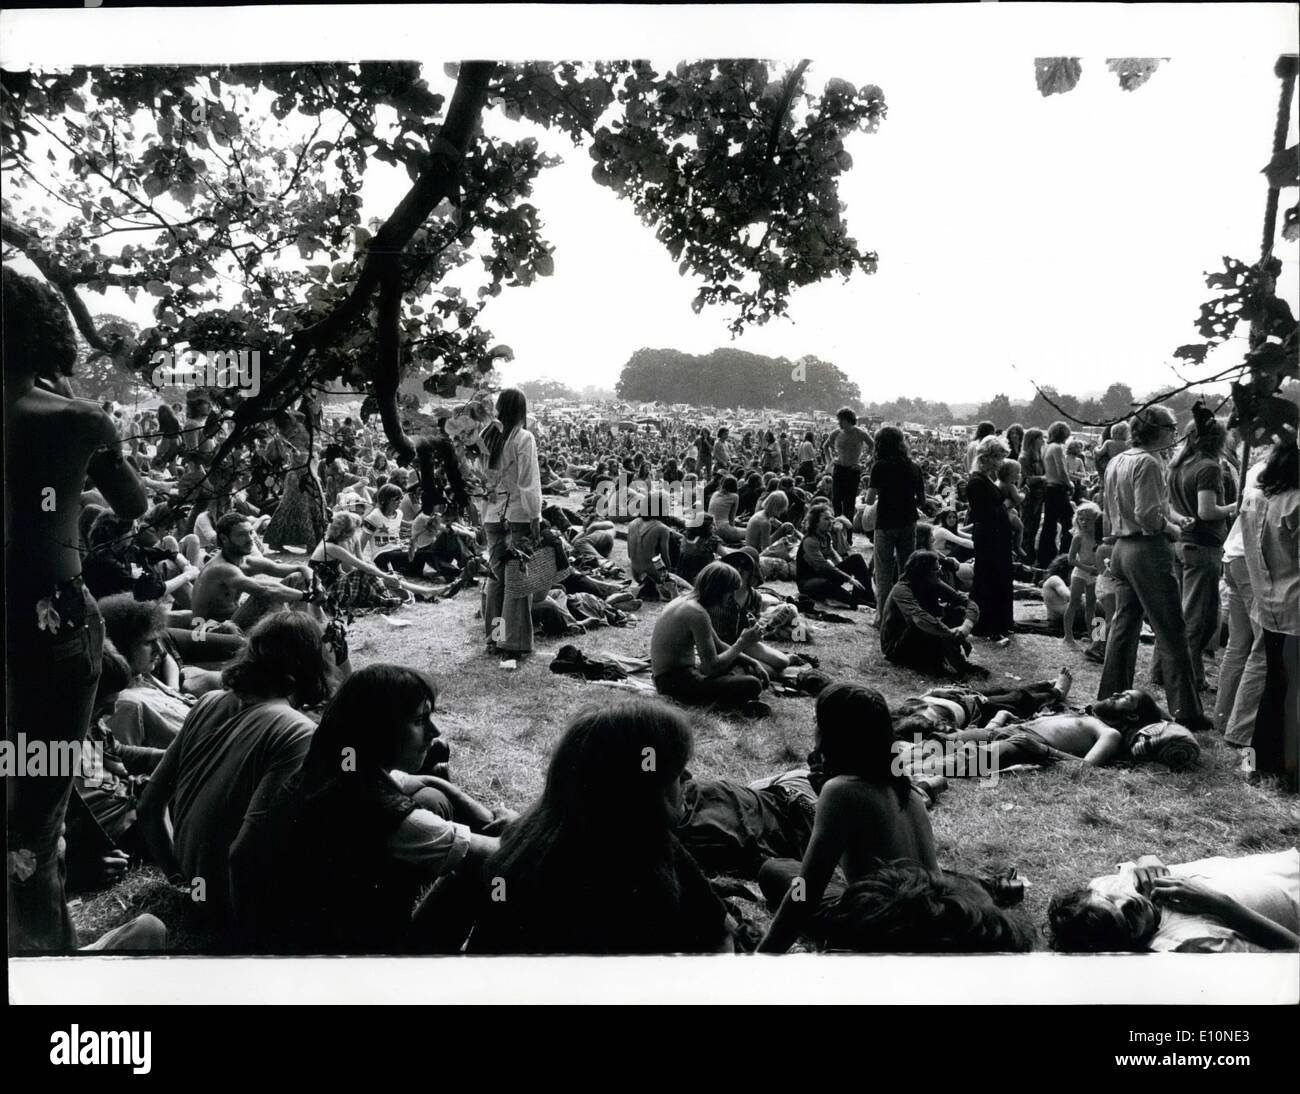 08 1973 - Pop Fans Attend u0027u0027Free Festivalu0027u0027 In & In Windsor Great Park Stock Photos u0026 In Windsor Great Park Stock ...